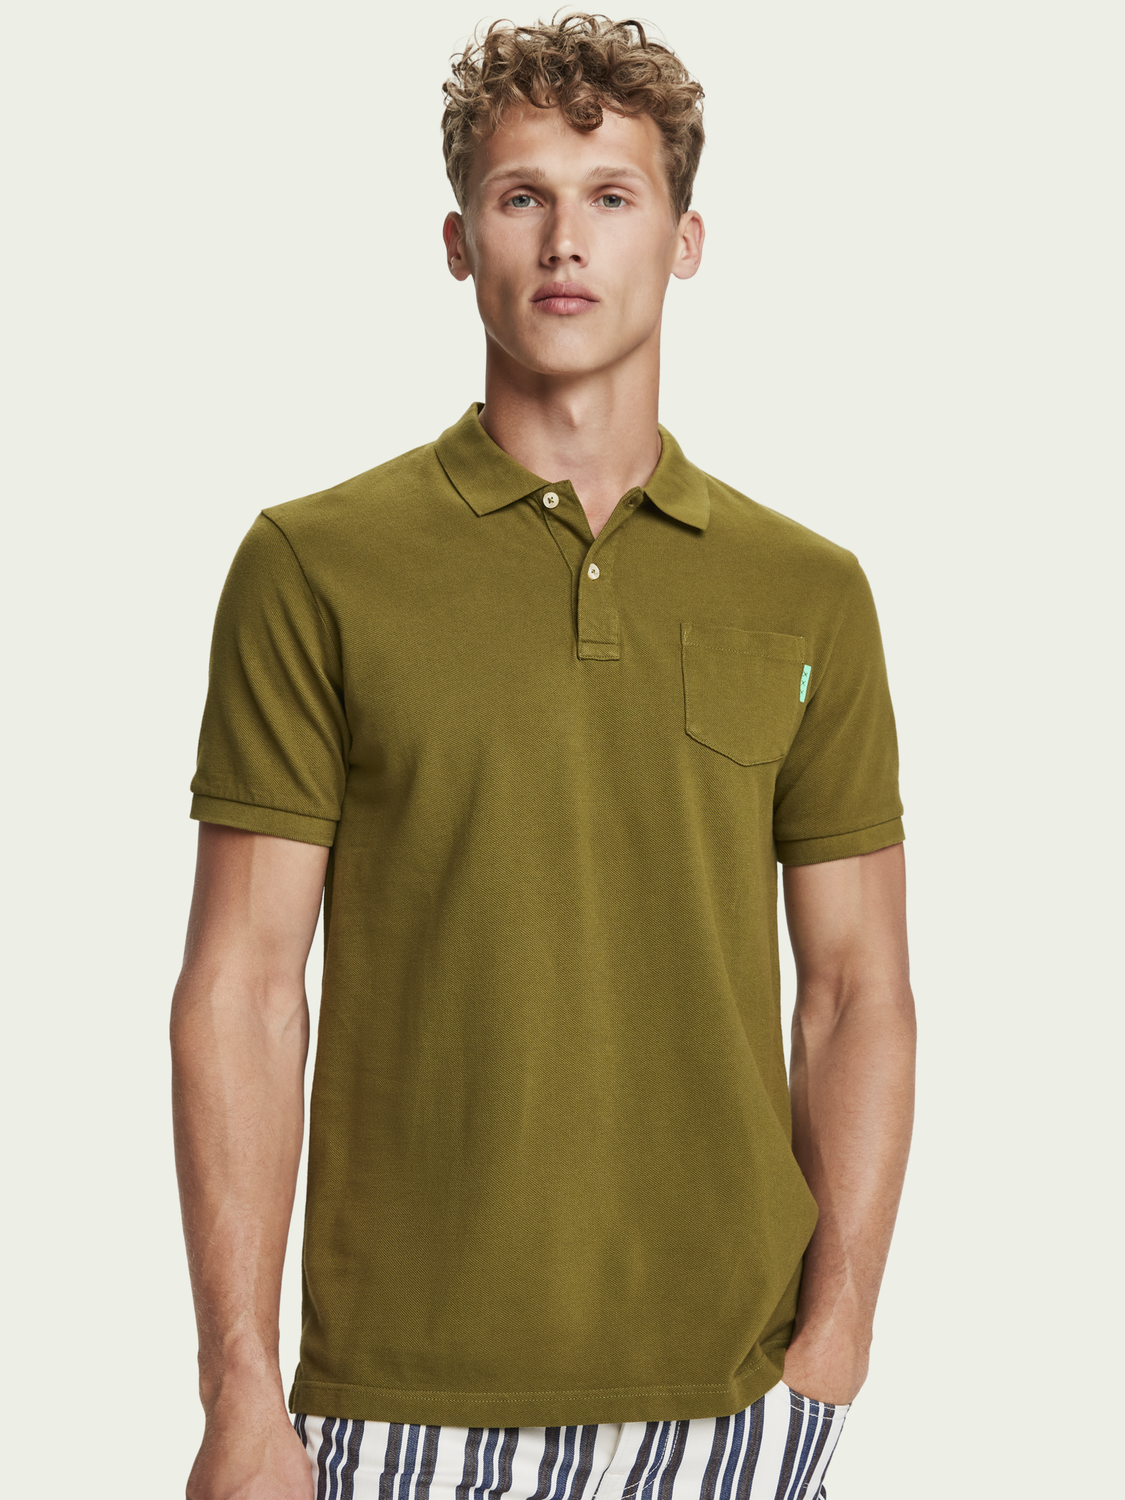 Men 100% cotton short sleeve polo shirt with pocket